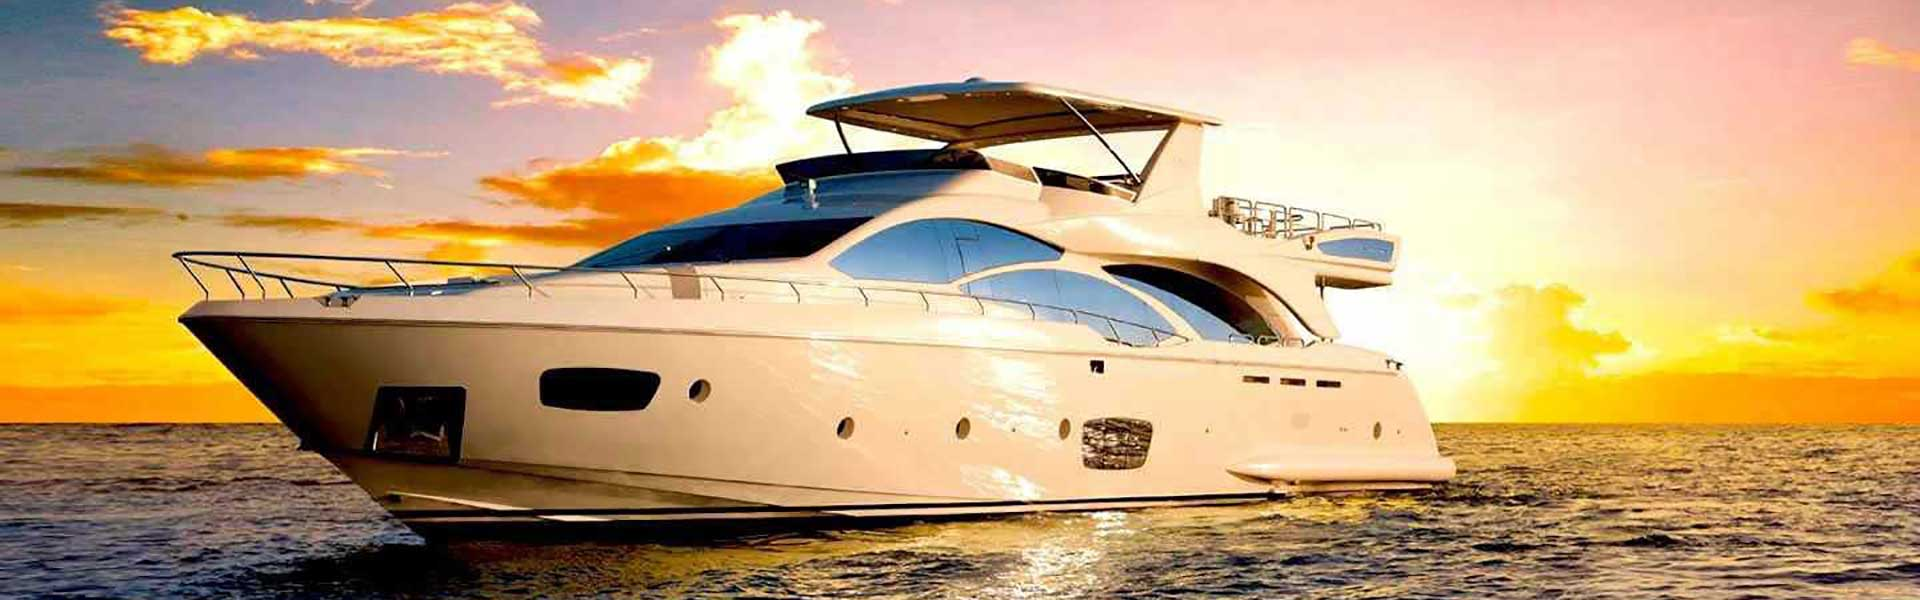 85 FT Azimut - Luxury-Power Yacht